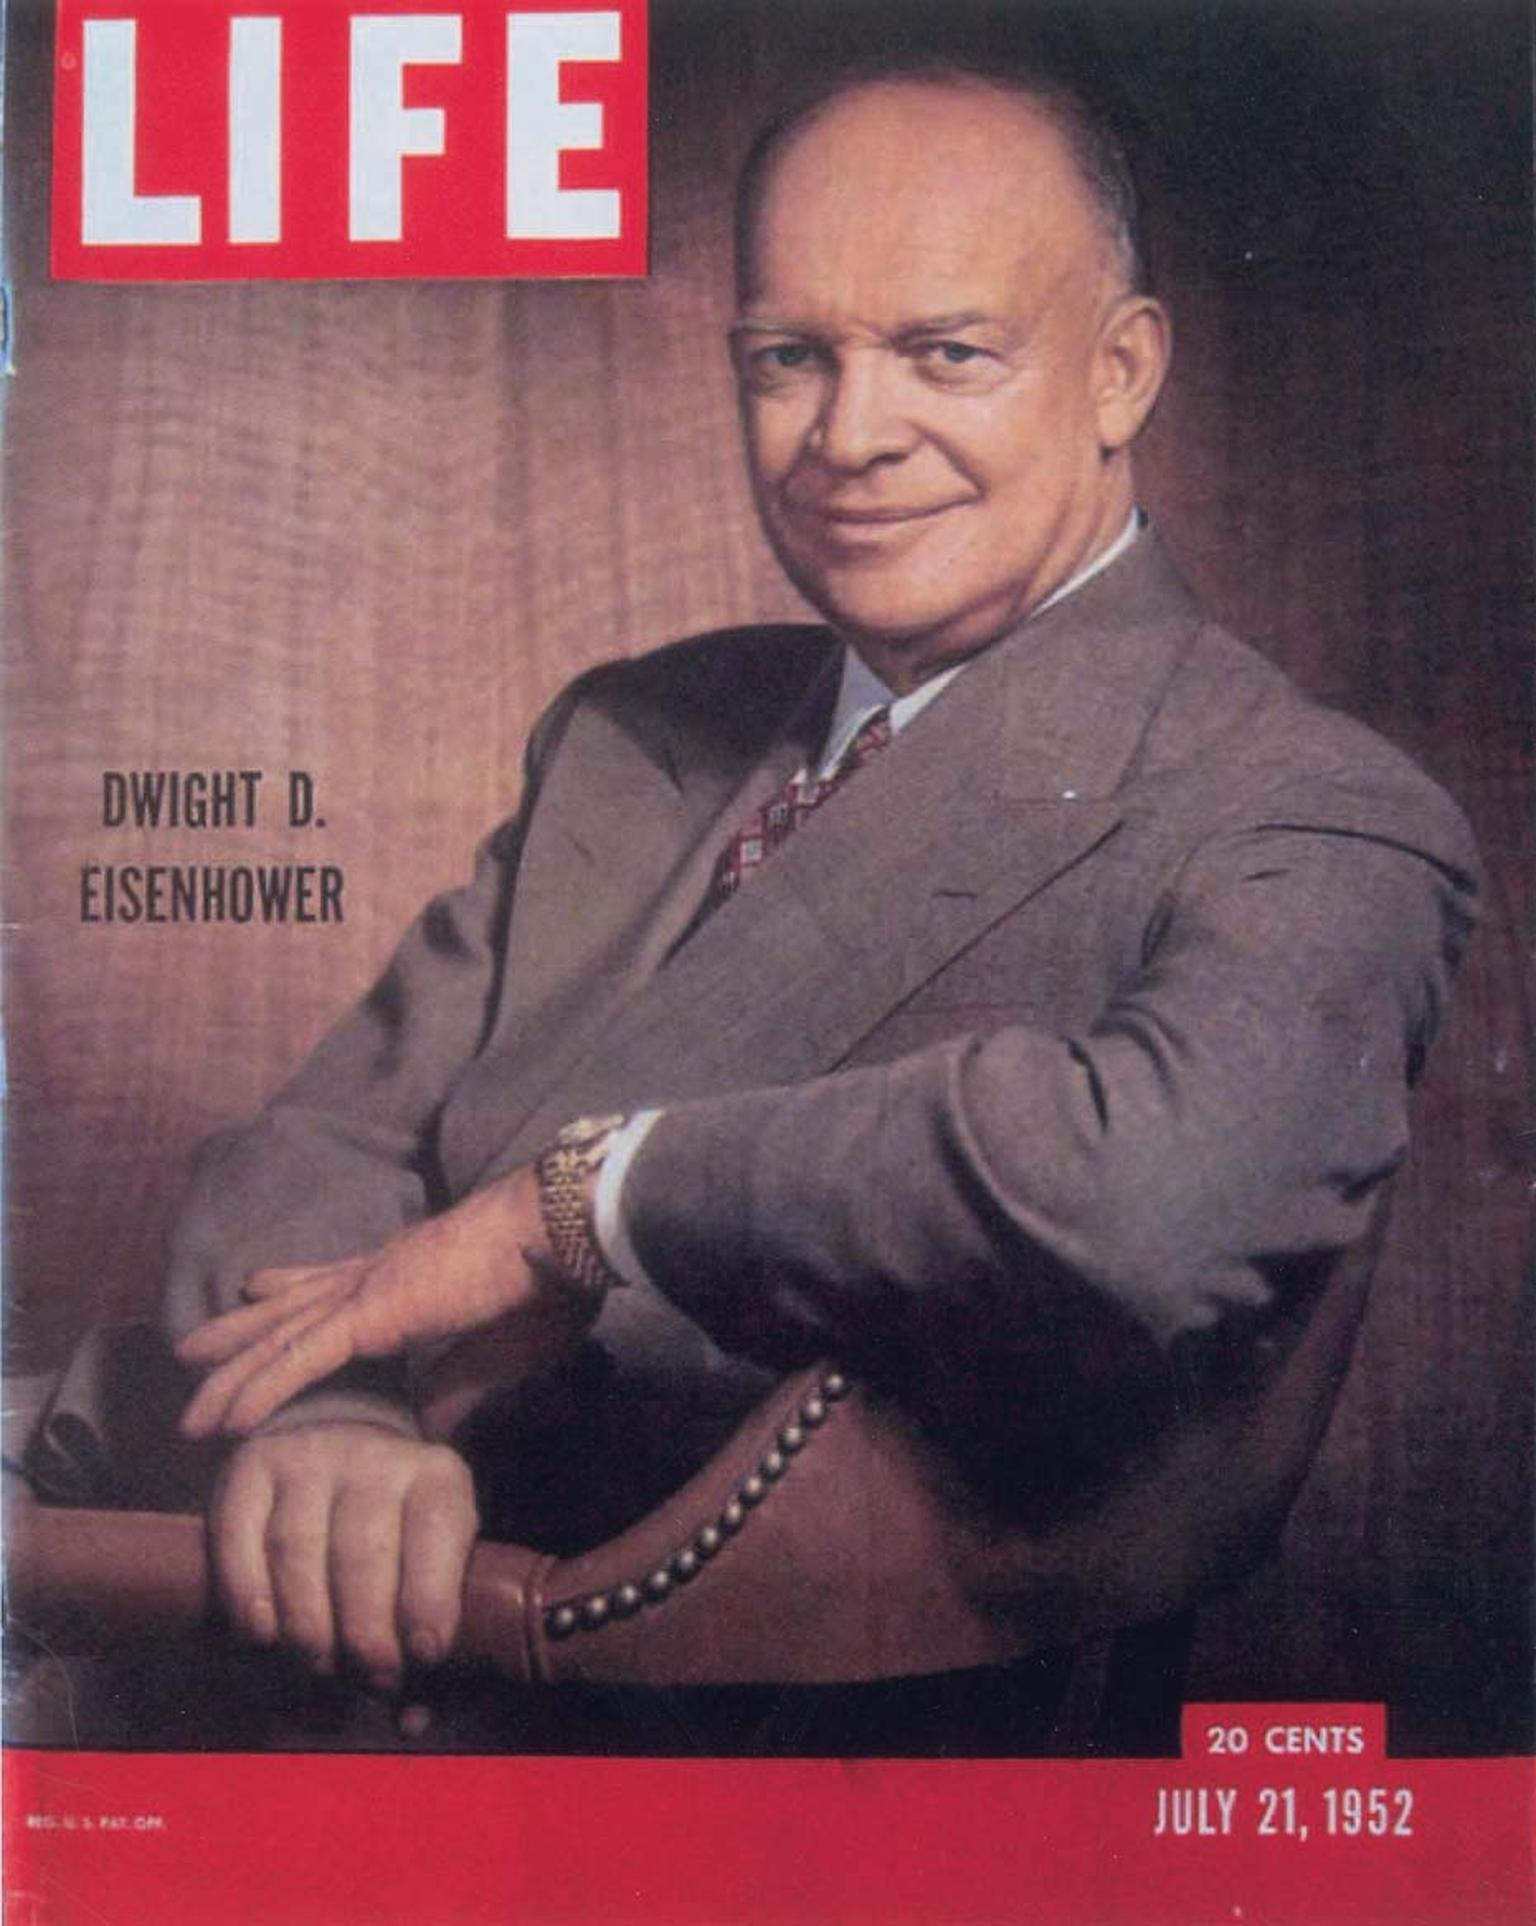 President Dwight D Eisenhower was regularly spotted wearing the Rolex Datejust watch during his two terms in the White House. It also appeared in official portraits, including one on the cover of Life magazine in 1952.